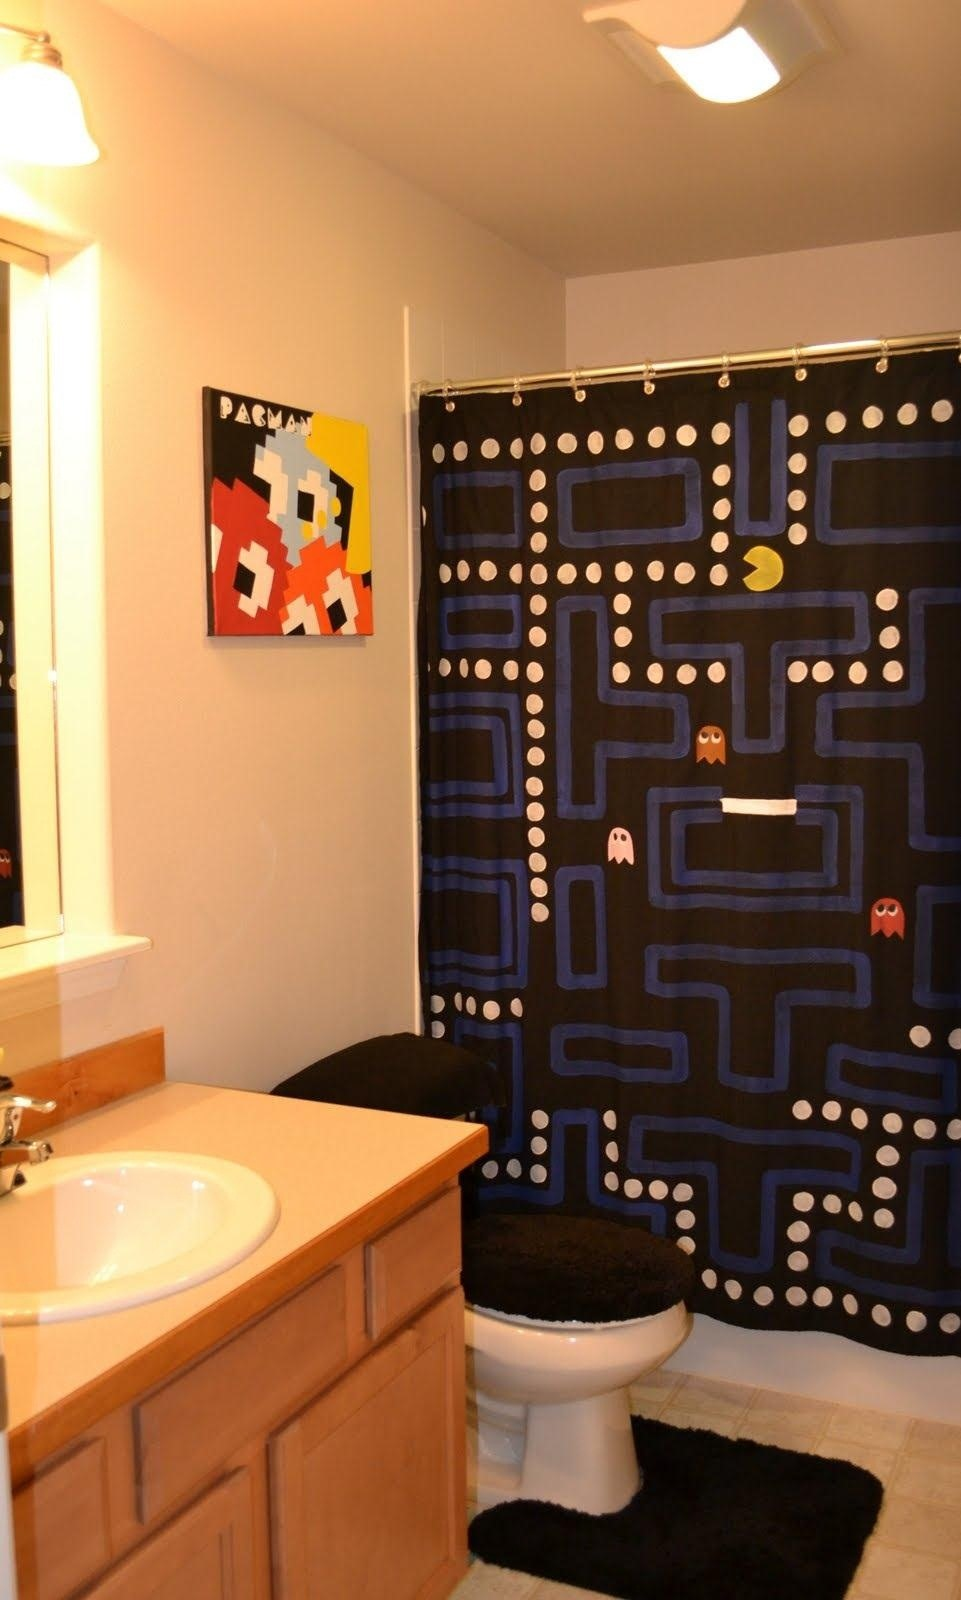 How To Make Shower Curtain How To Make An Amazing Pac Man Shower Curtain Macgyverisms